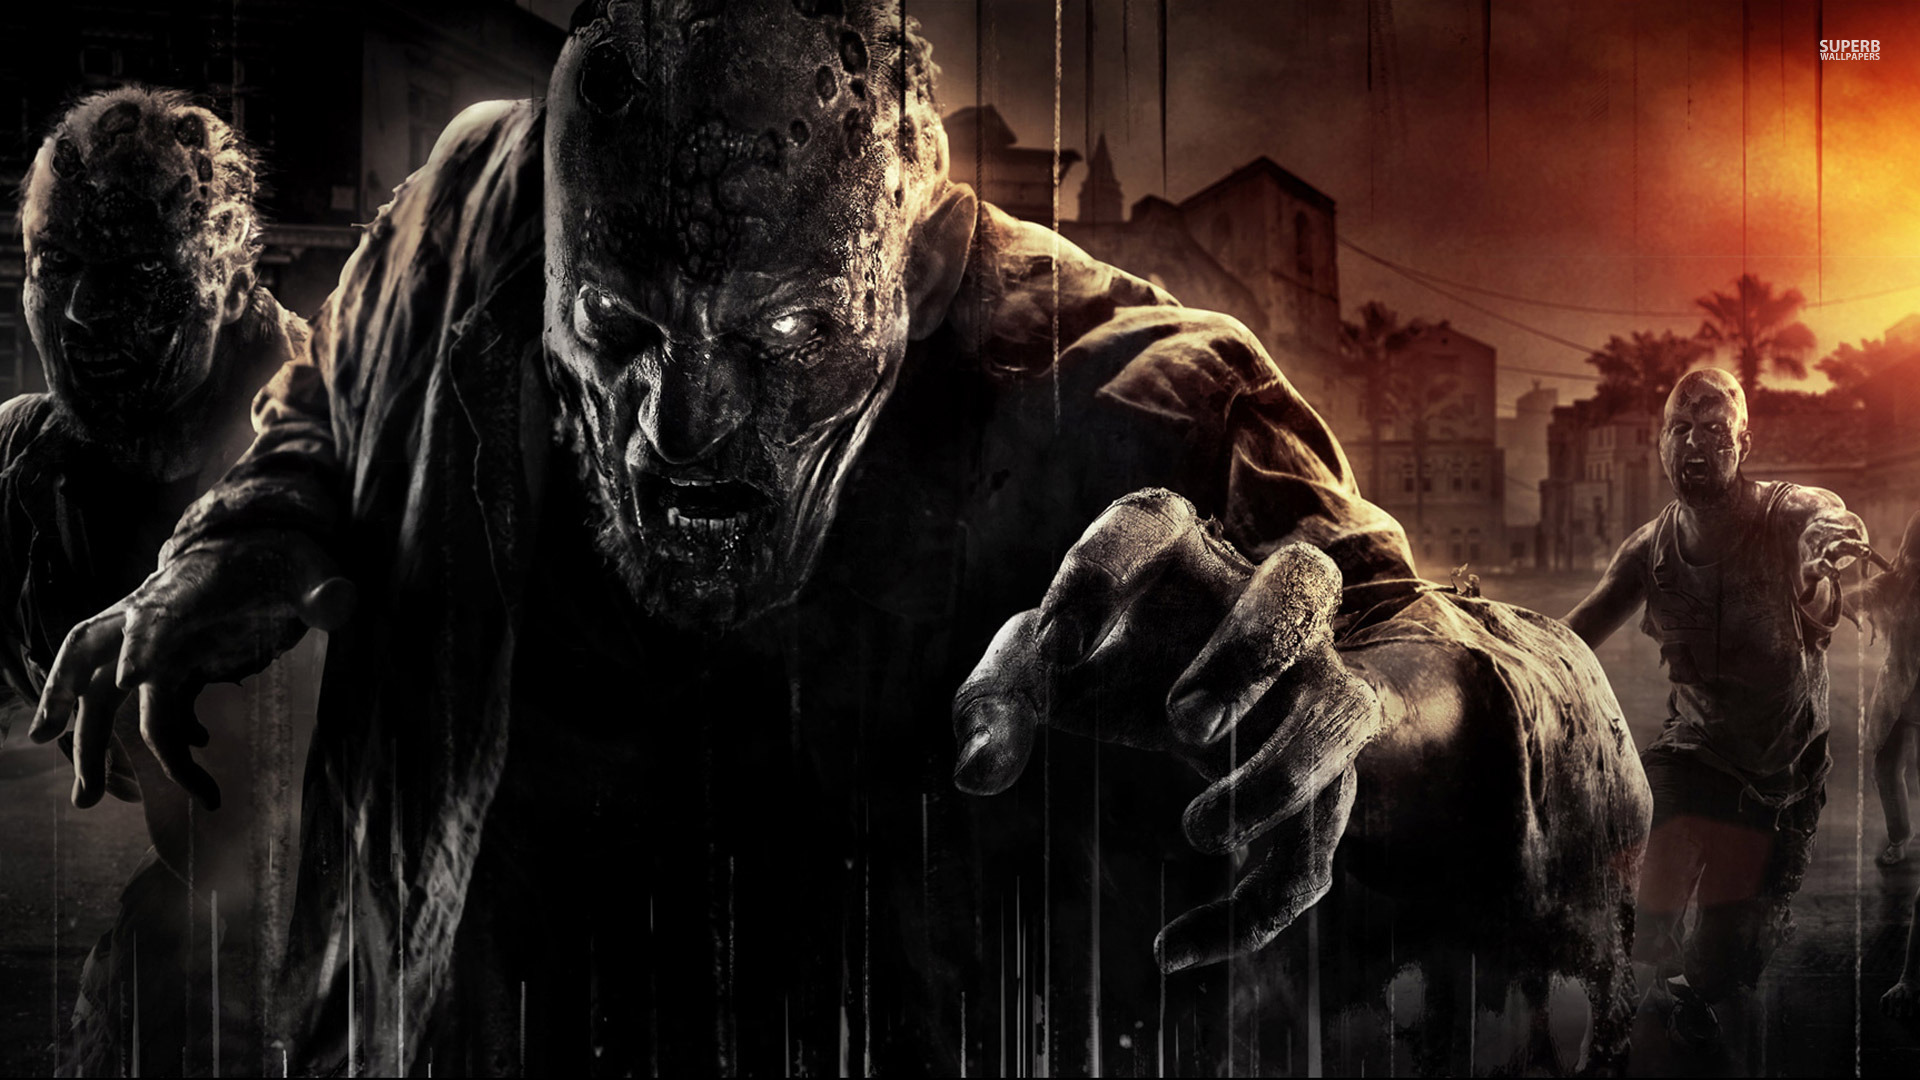 Dyinglight Artwork01 Dying Light Zombie Attack Game Novelty 92956 1920x1080 141779697203 Maxresdefault 30850